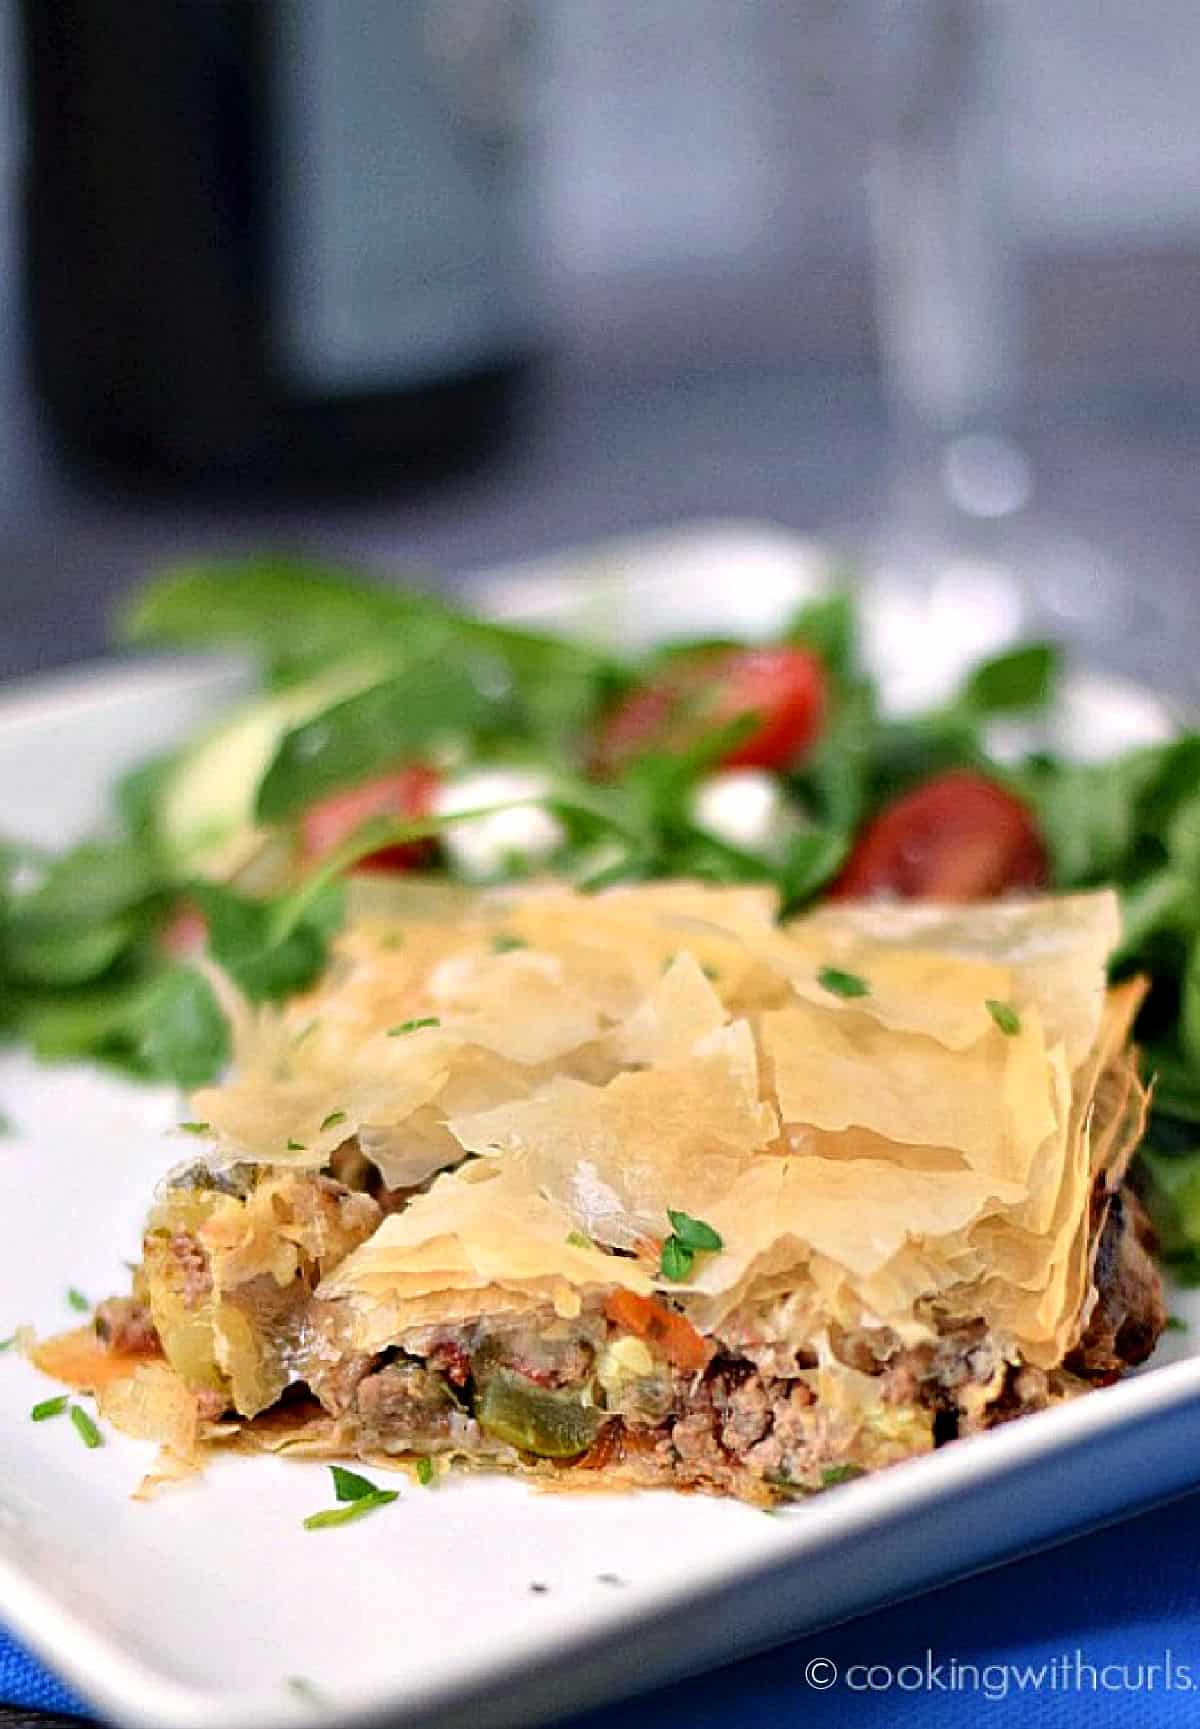 A slice of Greek Summery Meat Pie on a white plate with a Greek salad on the side.